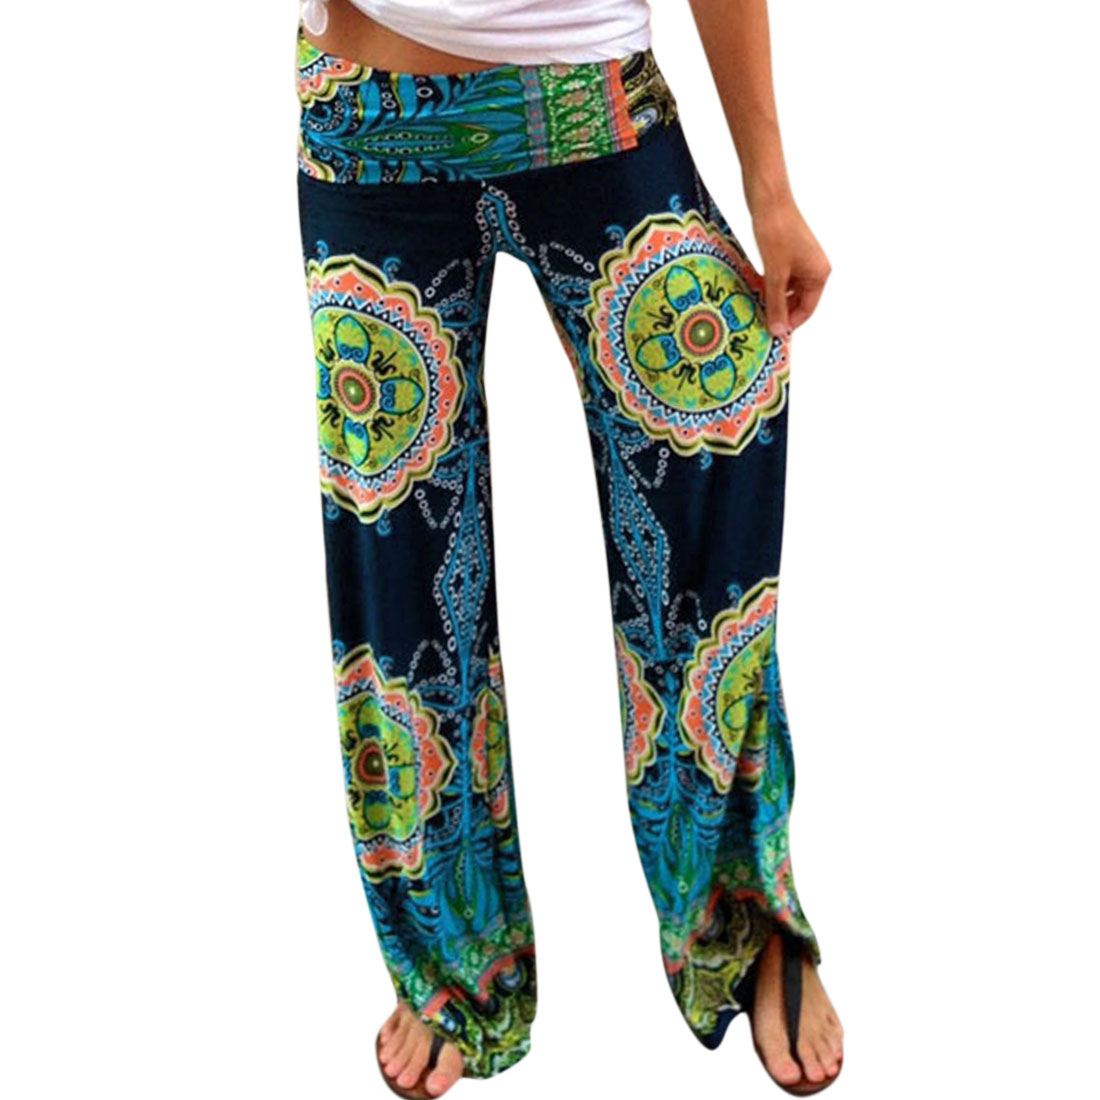 Allegra K Women's Tribal Aztec Printed Wide Leg Fold Over Waist Palazzo Pants Multicolor (Size M / 8)